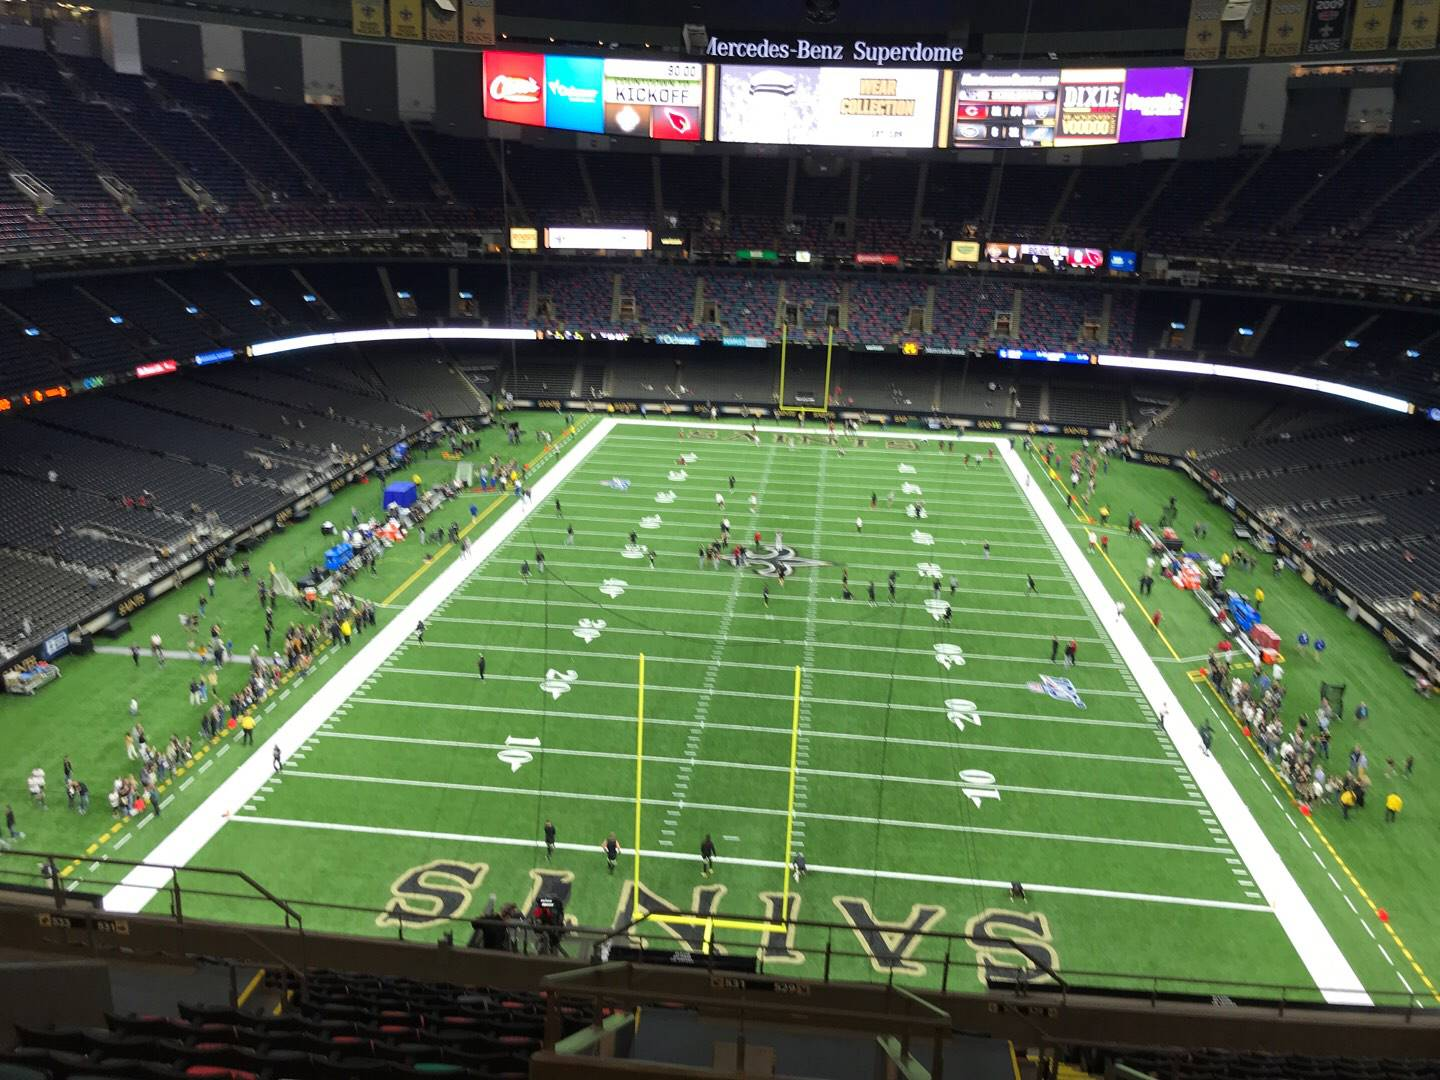 Mercedes-Benz Superdome Section 637 Row 12 Seat 2